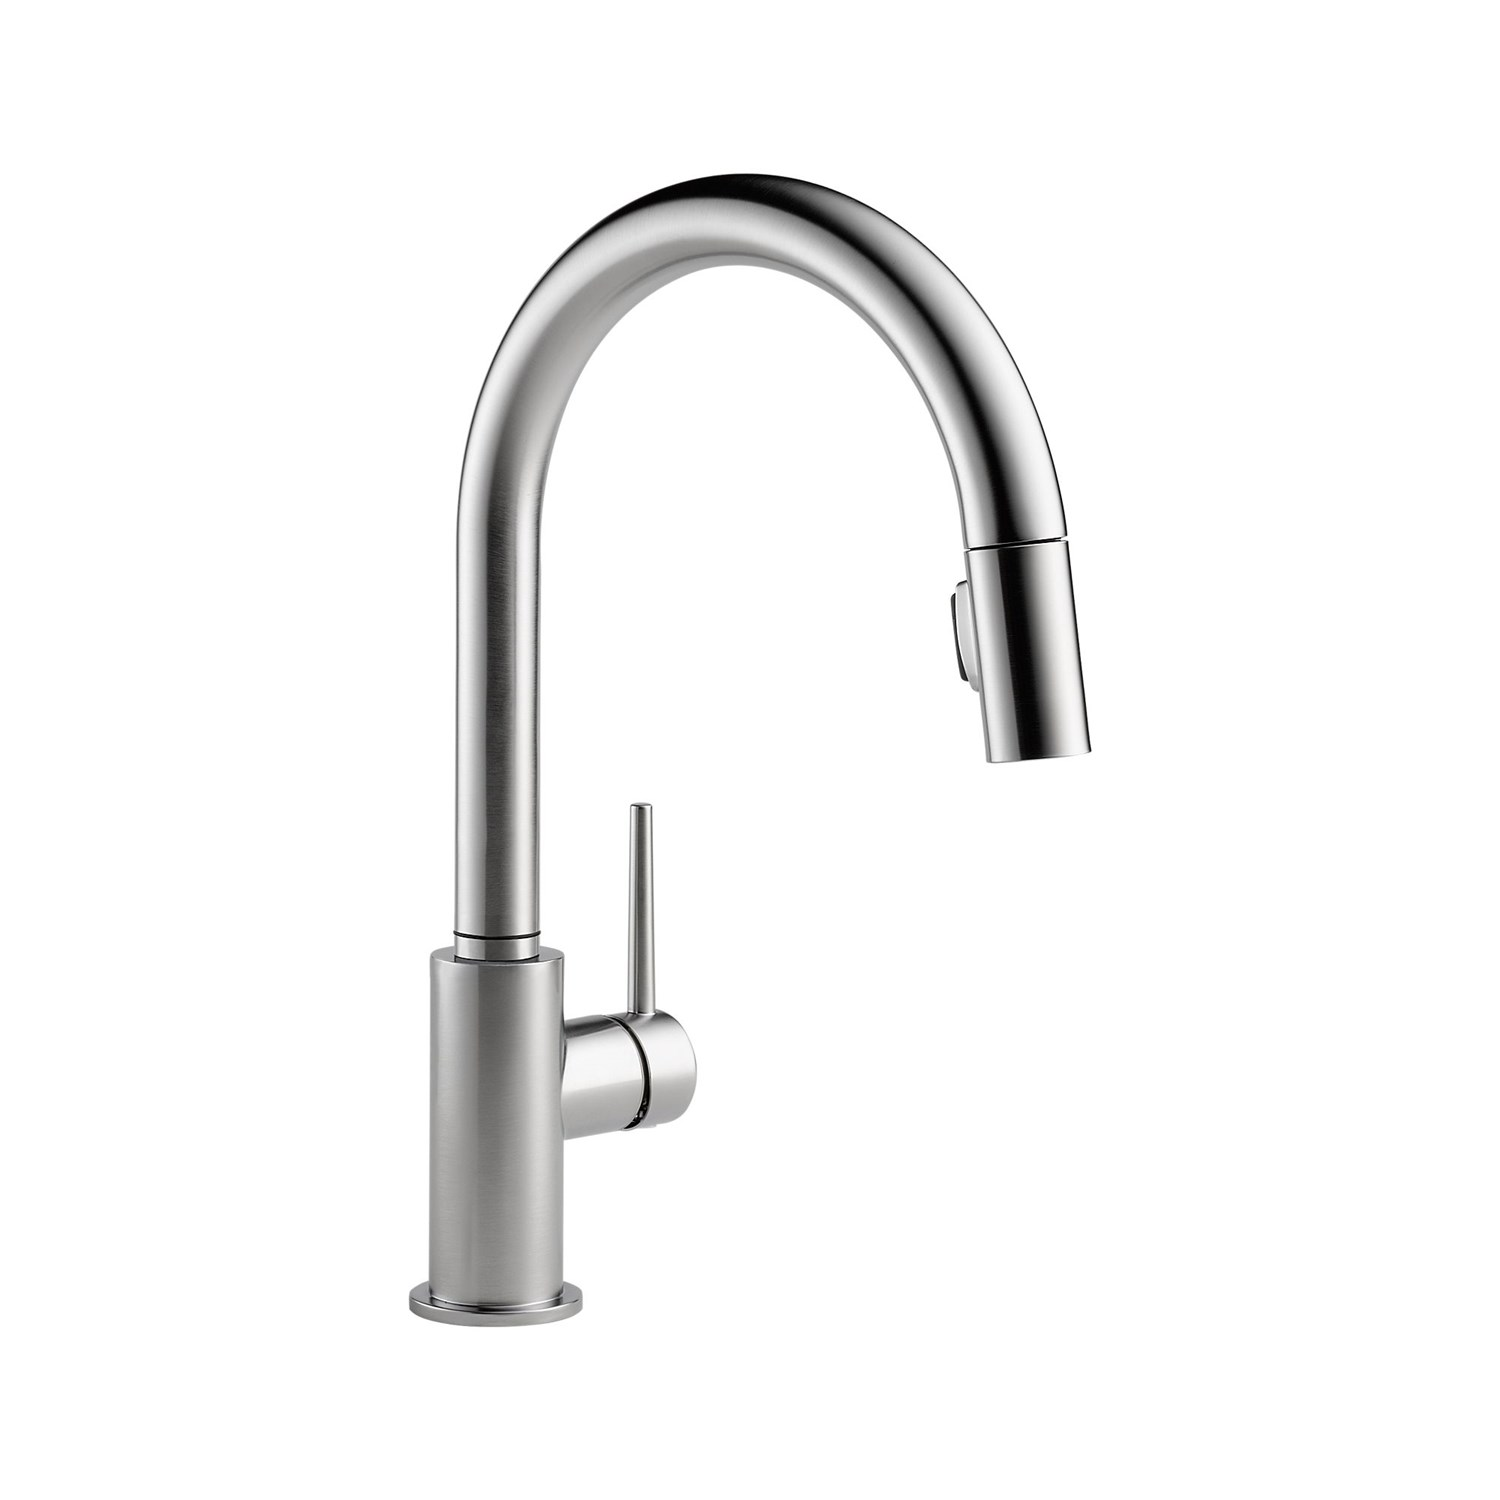 Comfy delta cassidy kitchen faucet for kitchen faucet ideas with delta single handle kitchen faucet with spray